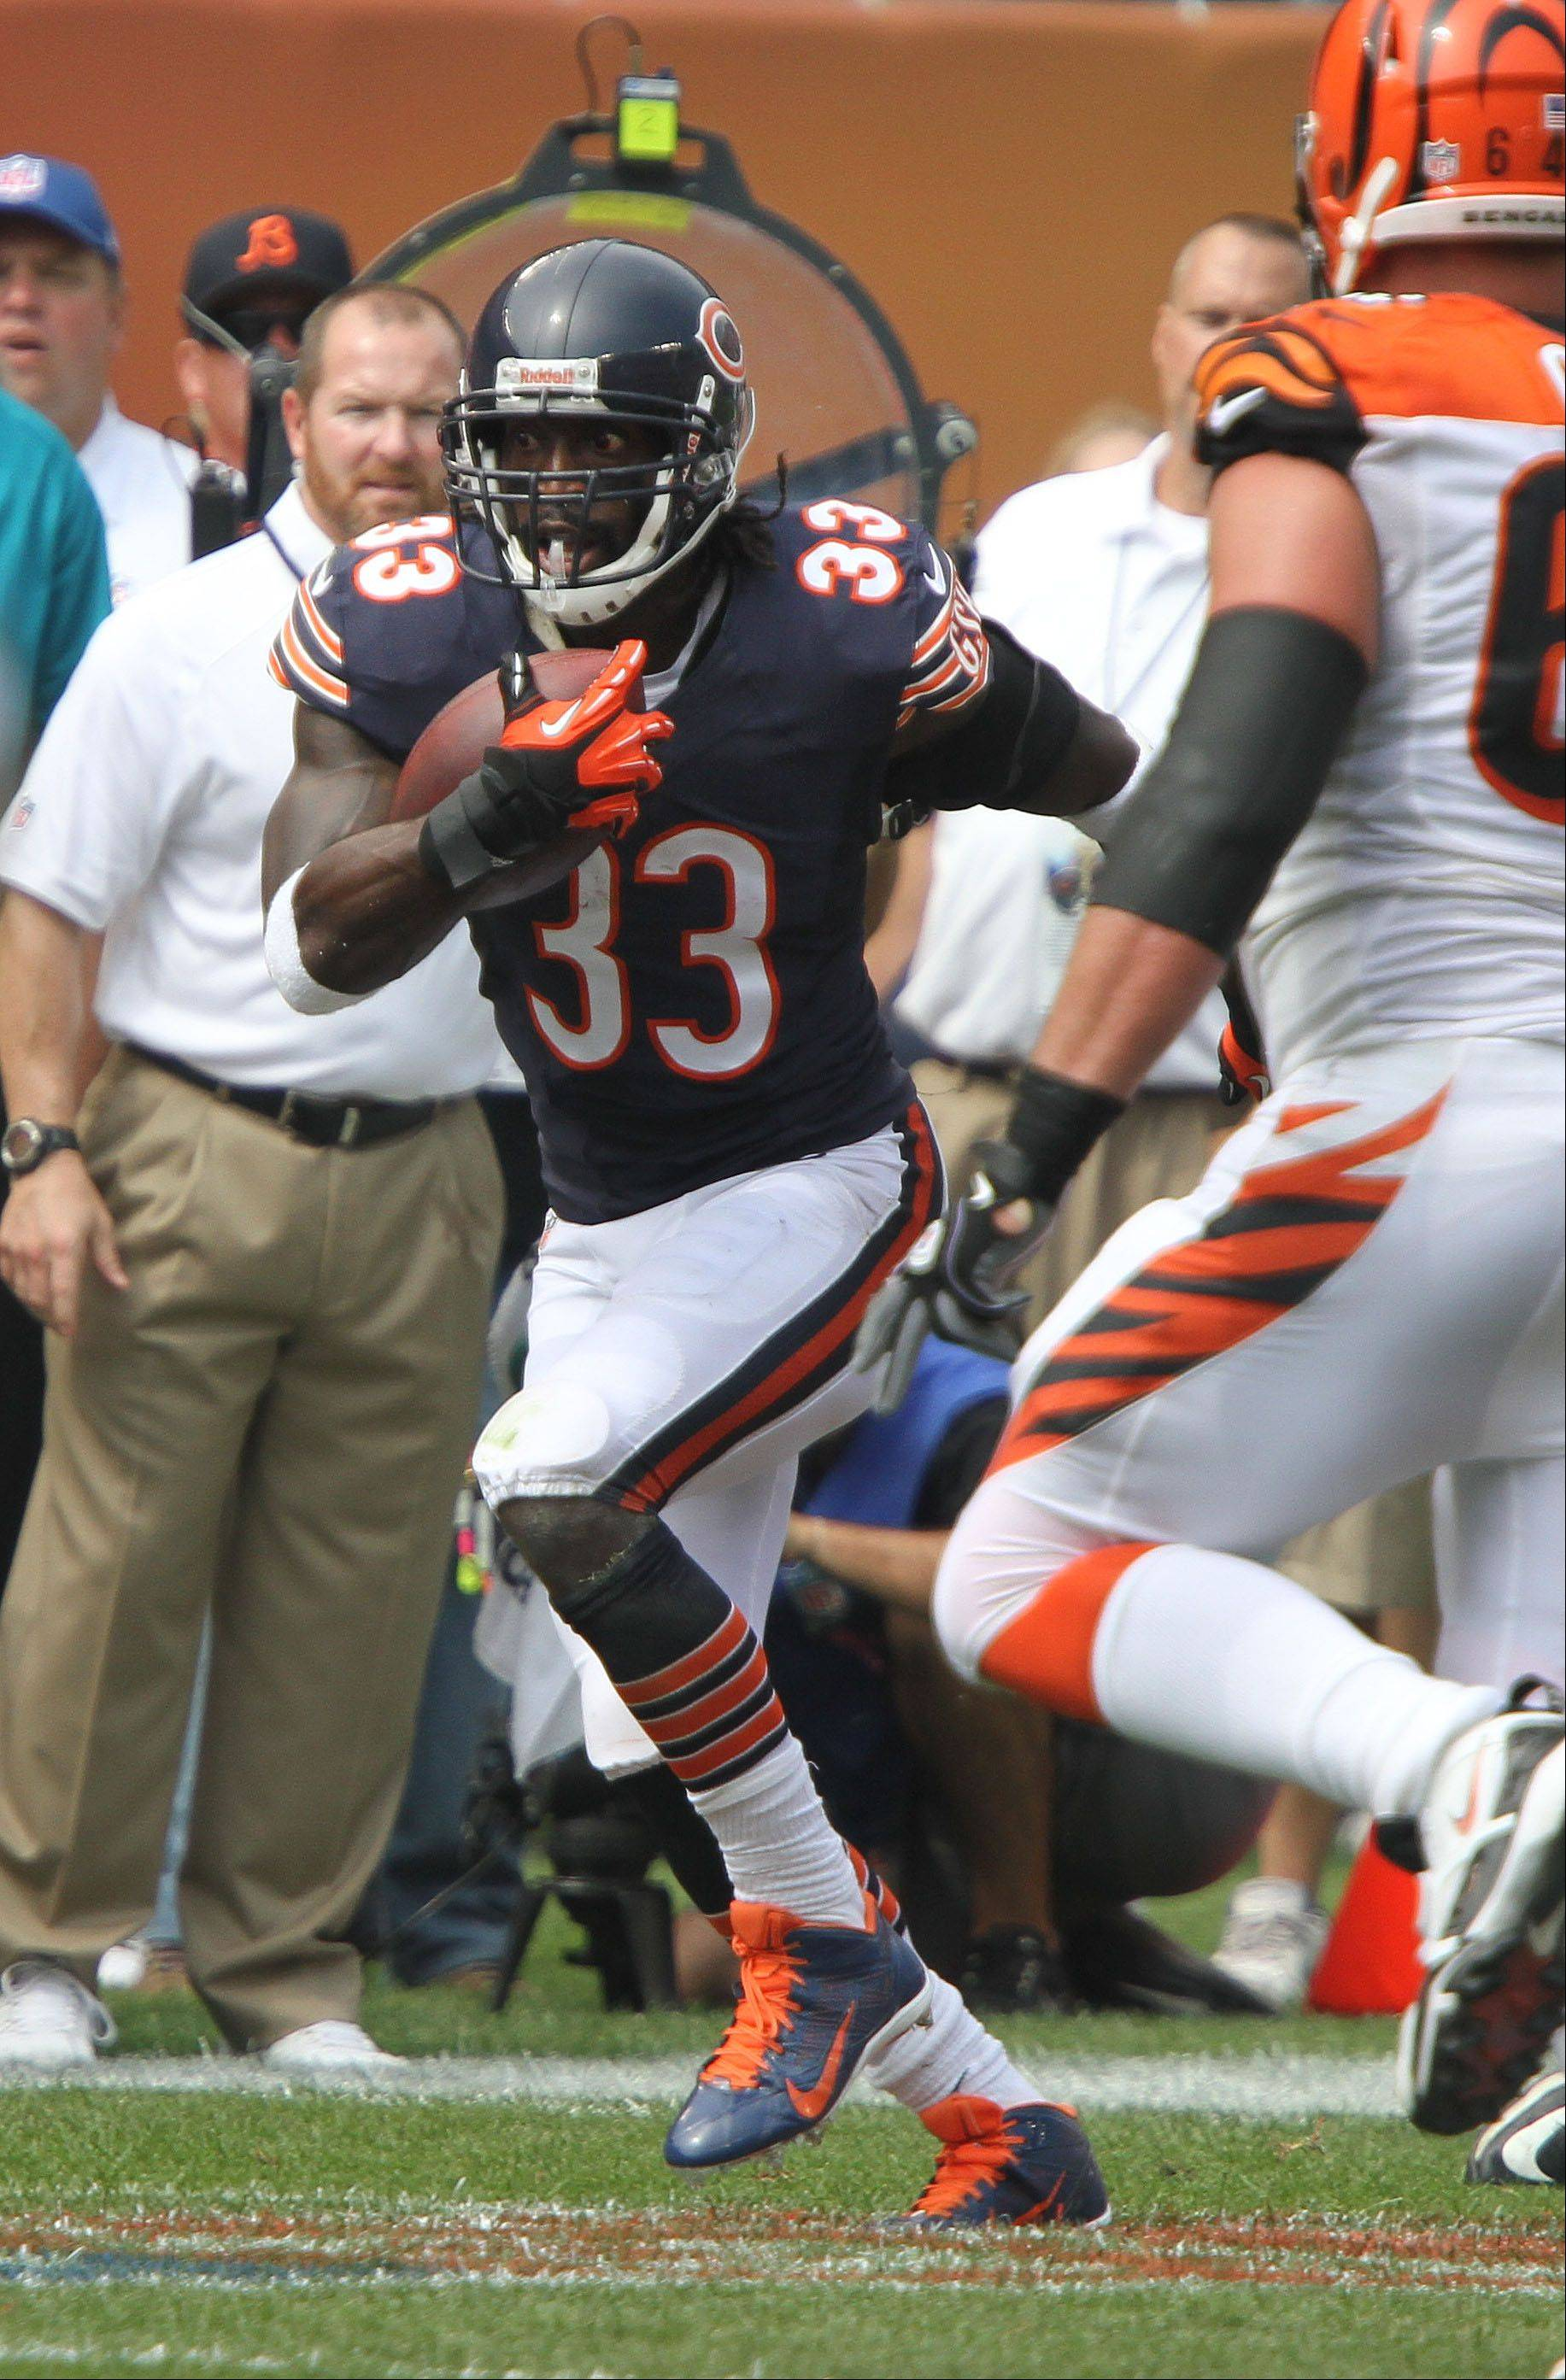 Chicago Bears cornerback Charles Tillman runs after an interception during their opening day game against the Cincinnati Bengals Sunday at Soldier Field in Chicago.